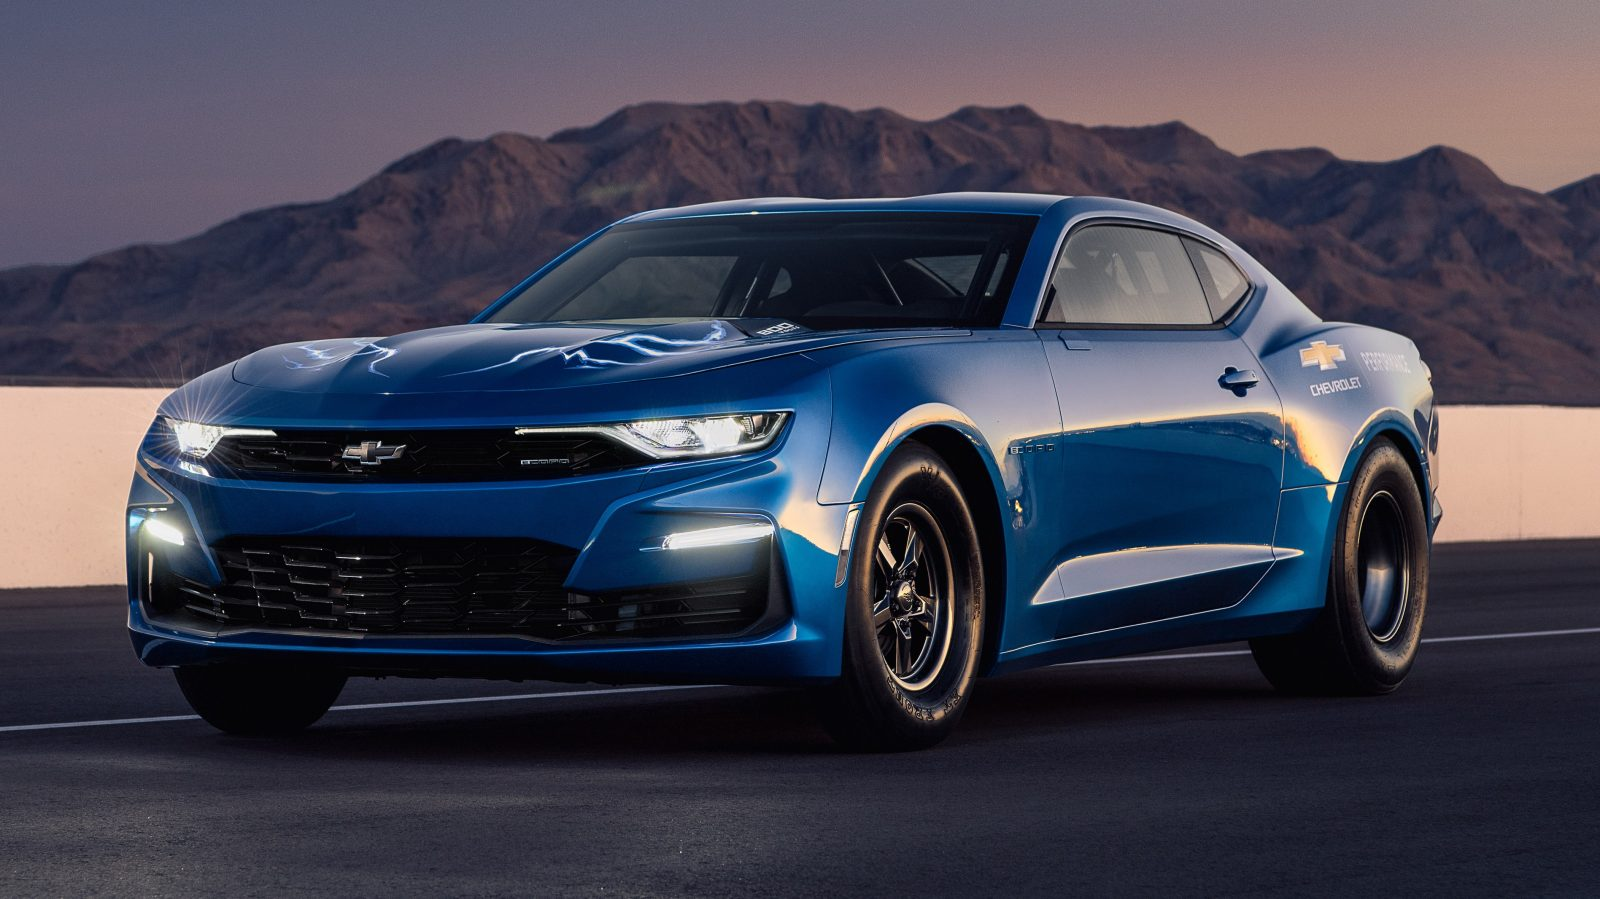 Chevy Shows Off A 800v Electric Ecopo Camaro Conversion Running 9 Sec Quarter Mile